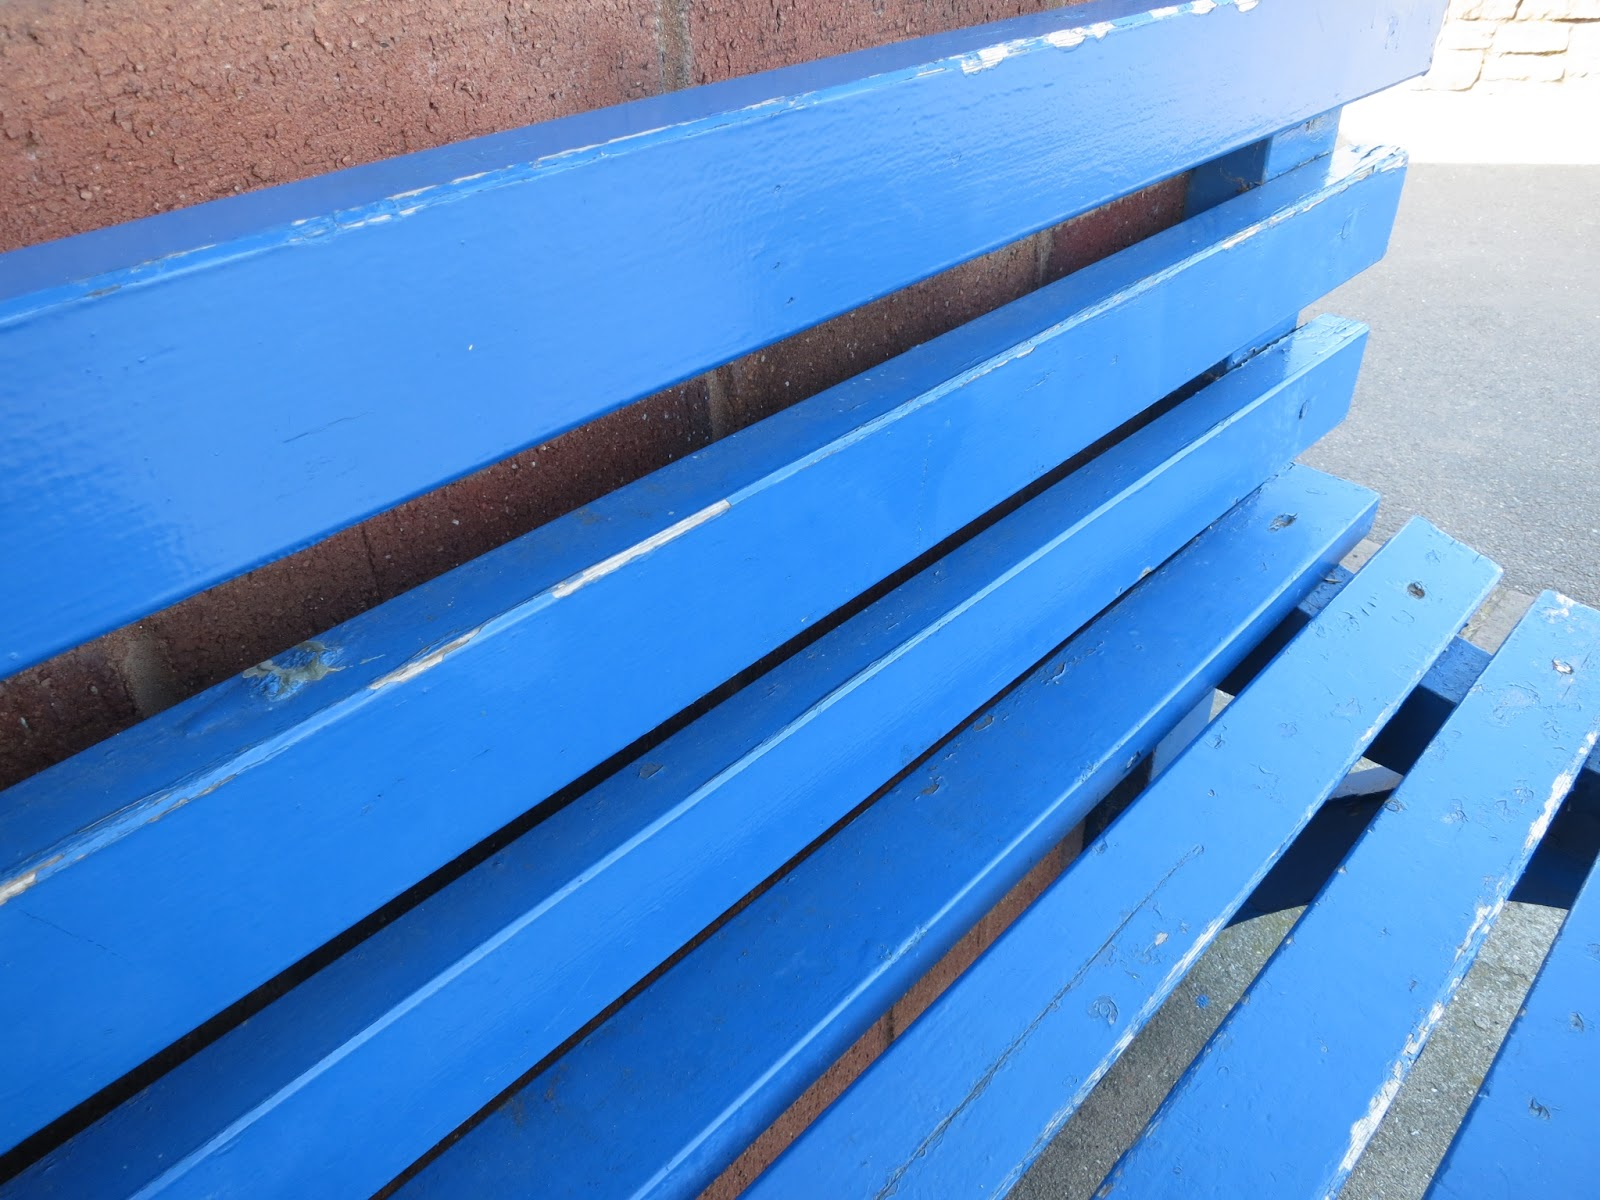 Blue painted wooden bench in seaside shelter